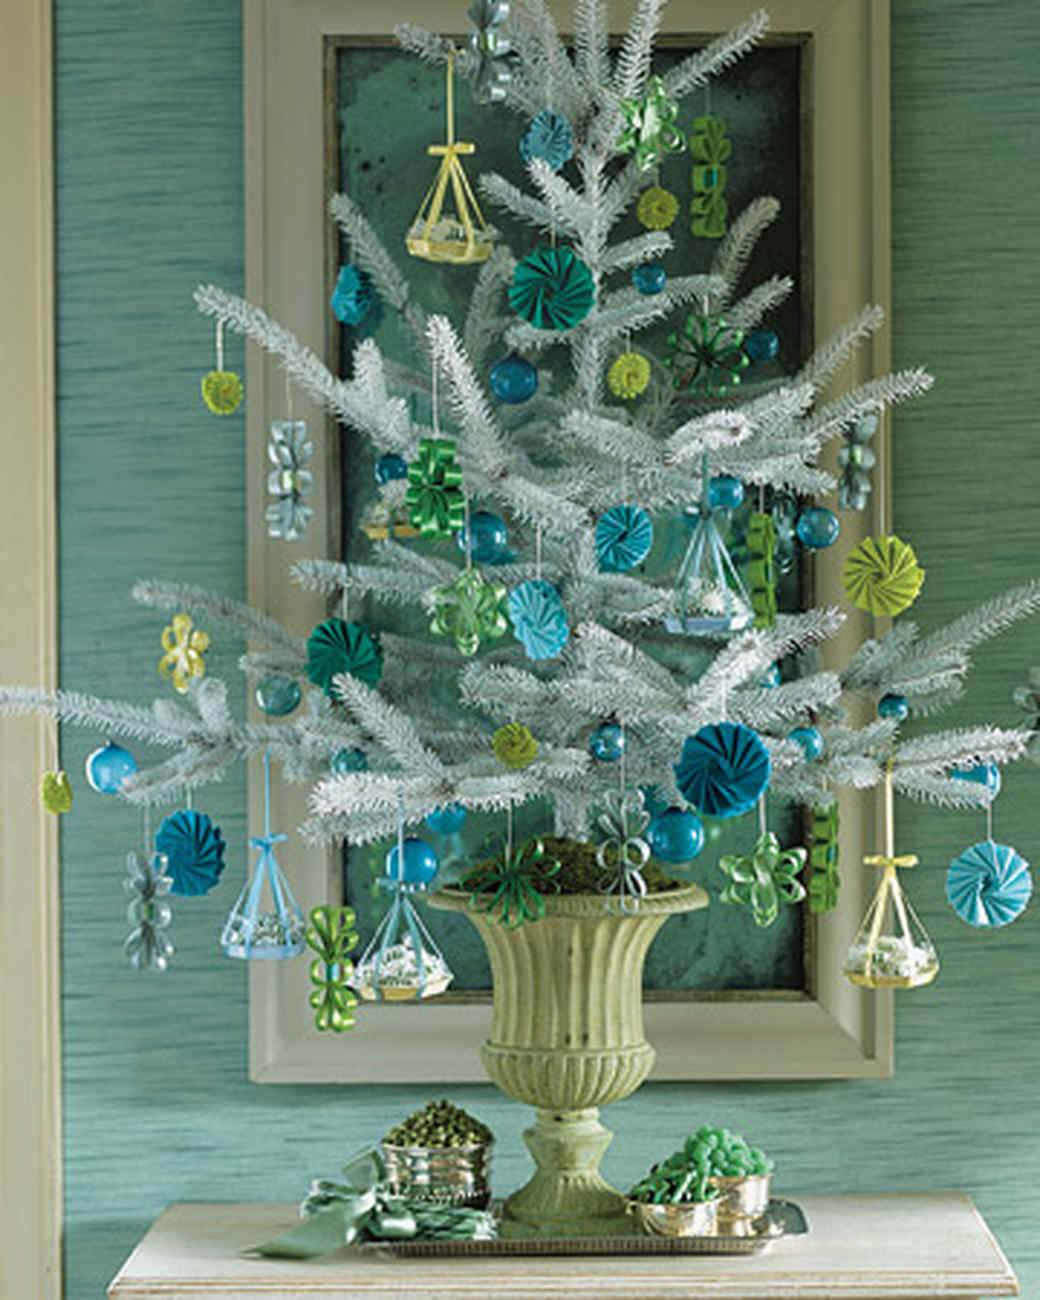 28 creative christmas tree decorating ideas martha stewart - How To Decorate A Small Christmas Tree